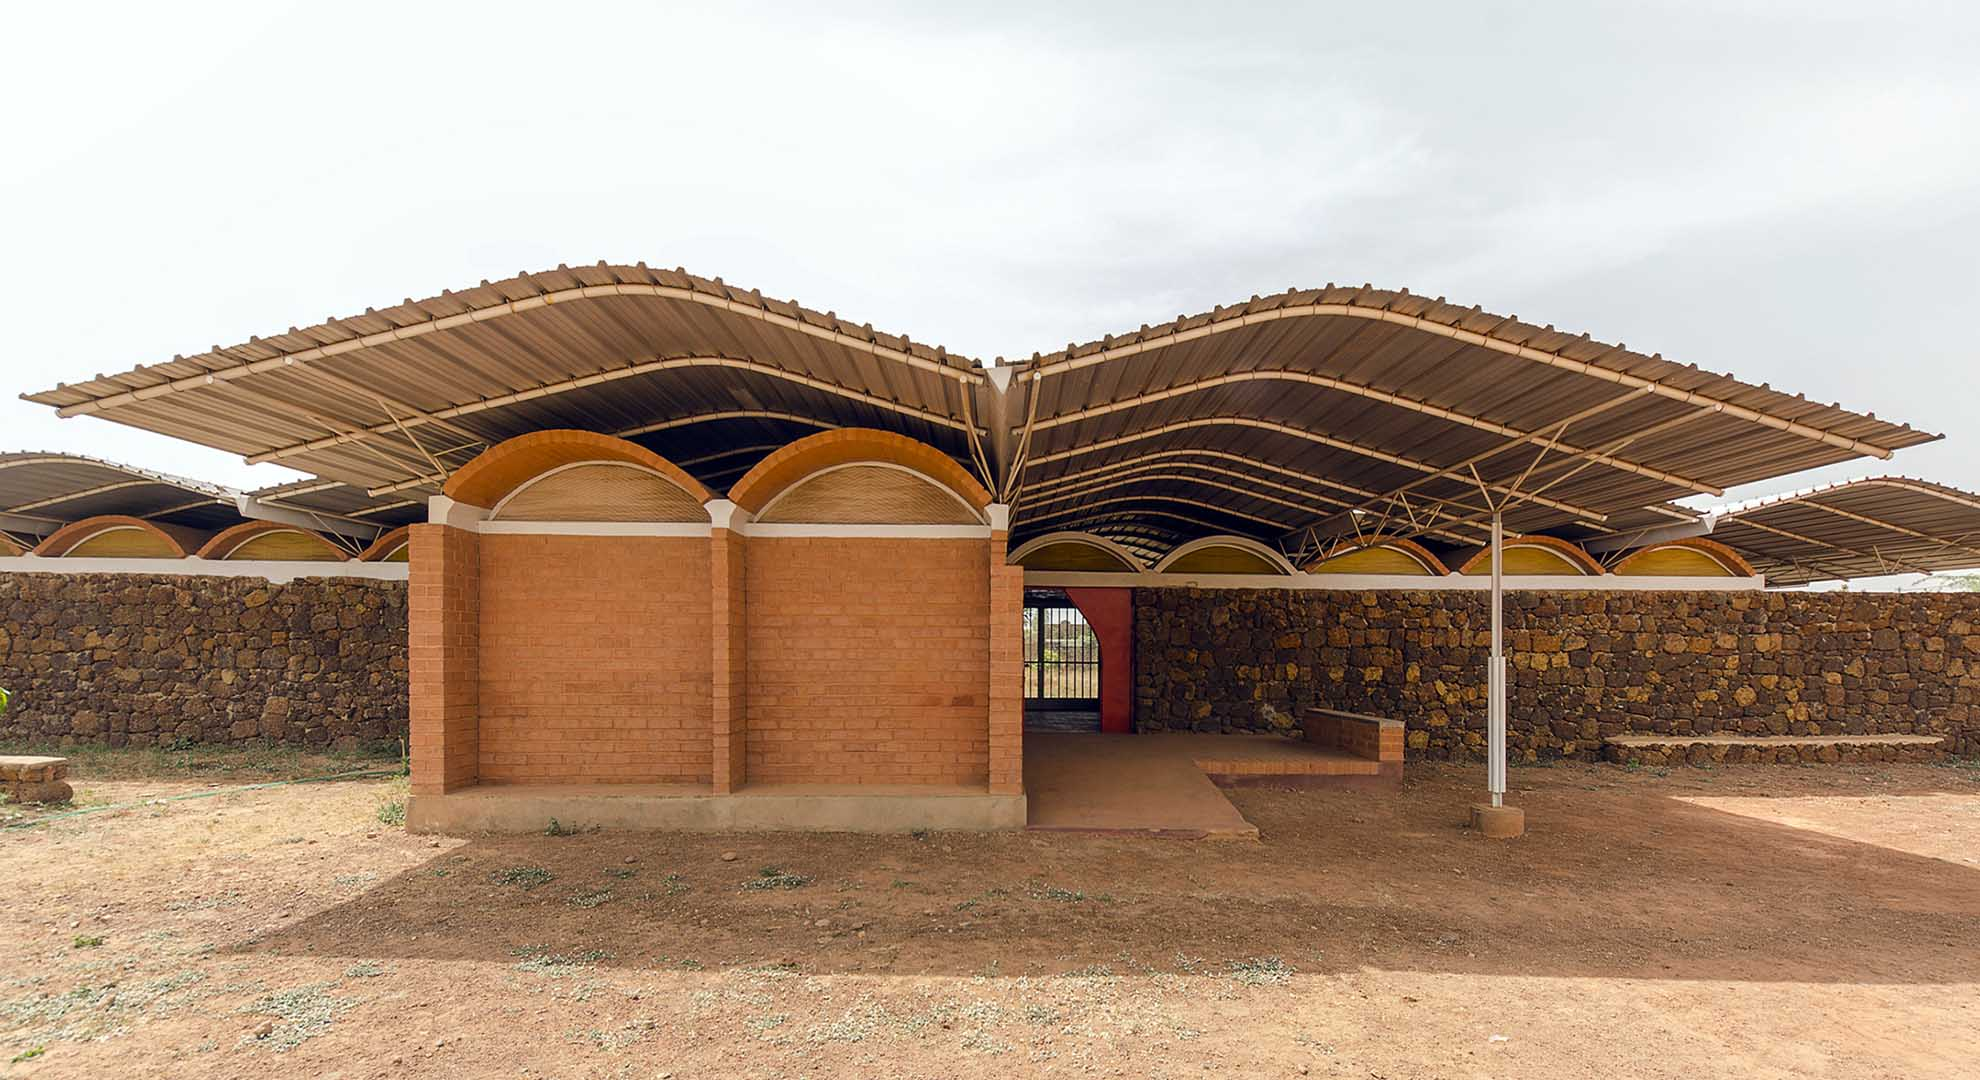 A home for children in Burkina Faso.